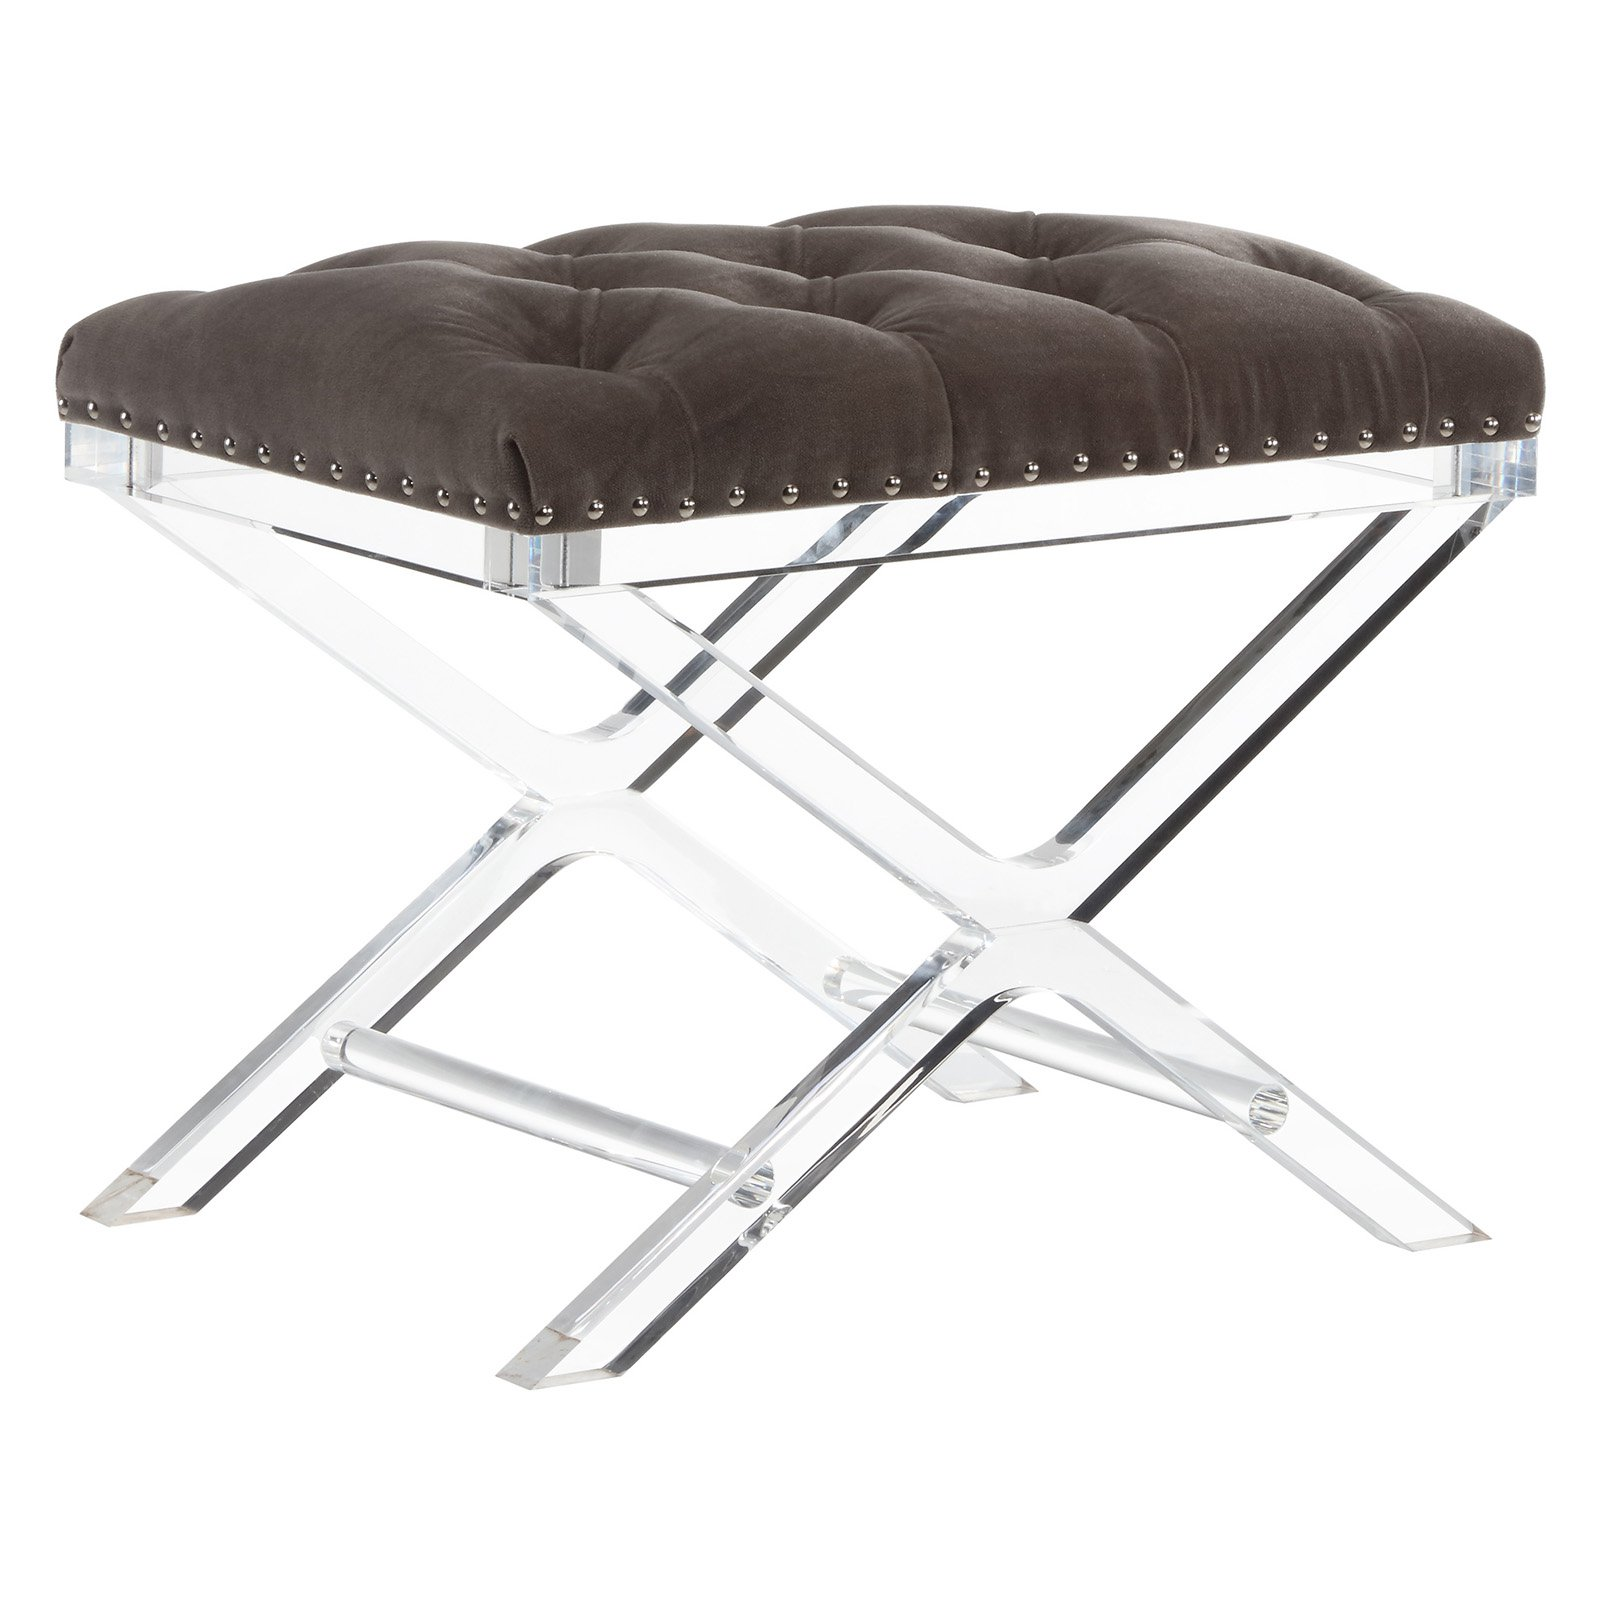 !nspire Velvet Tufted Bench with Acrylic Legs